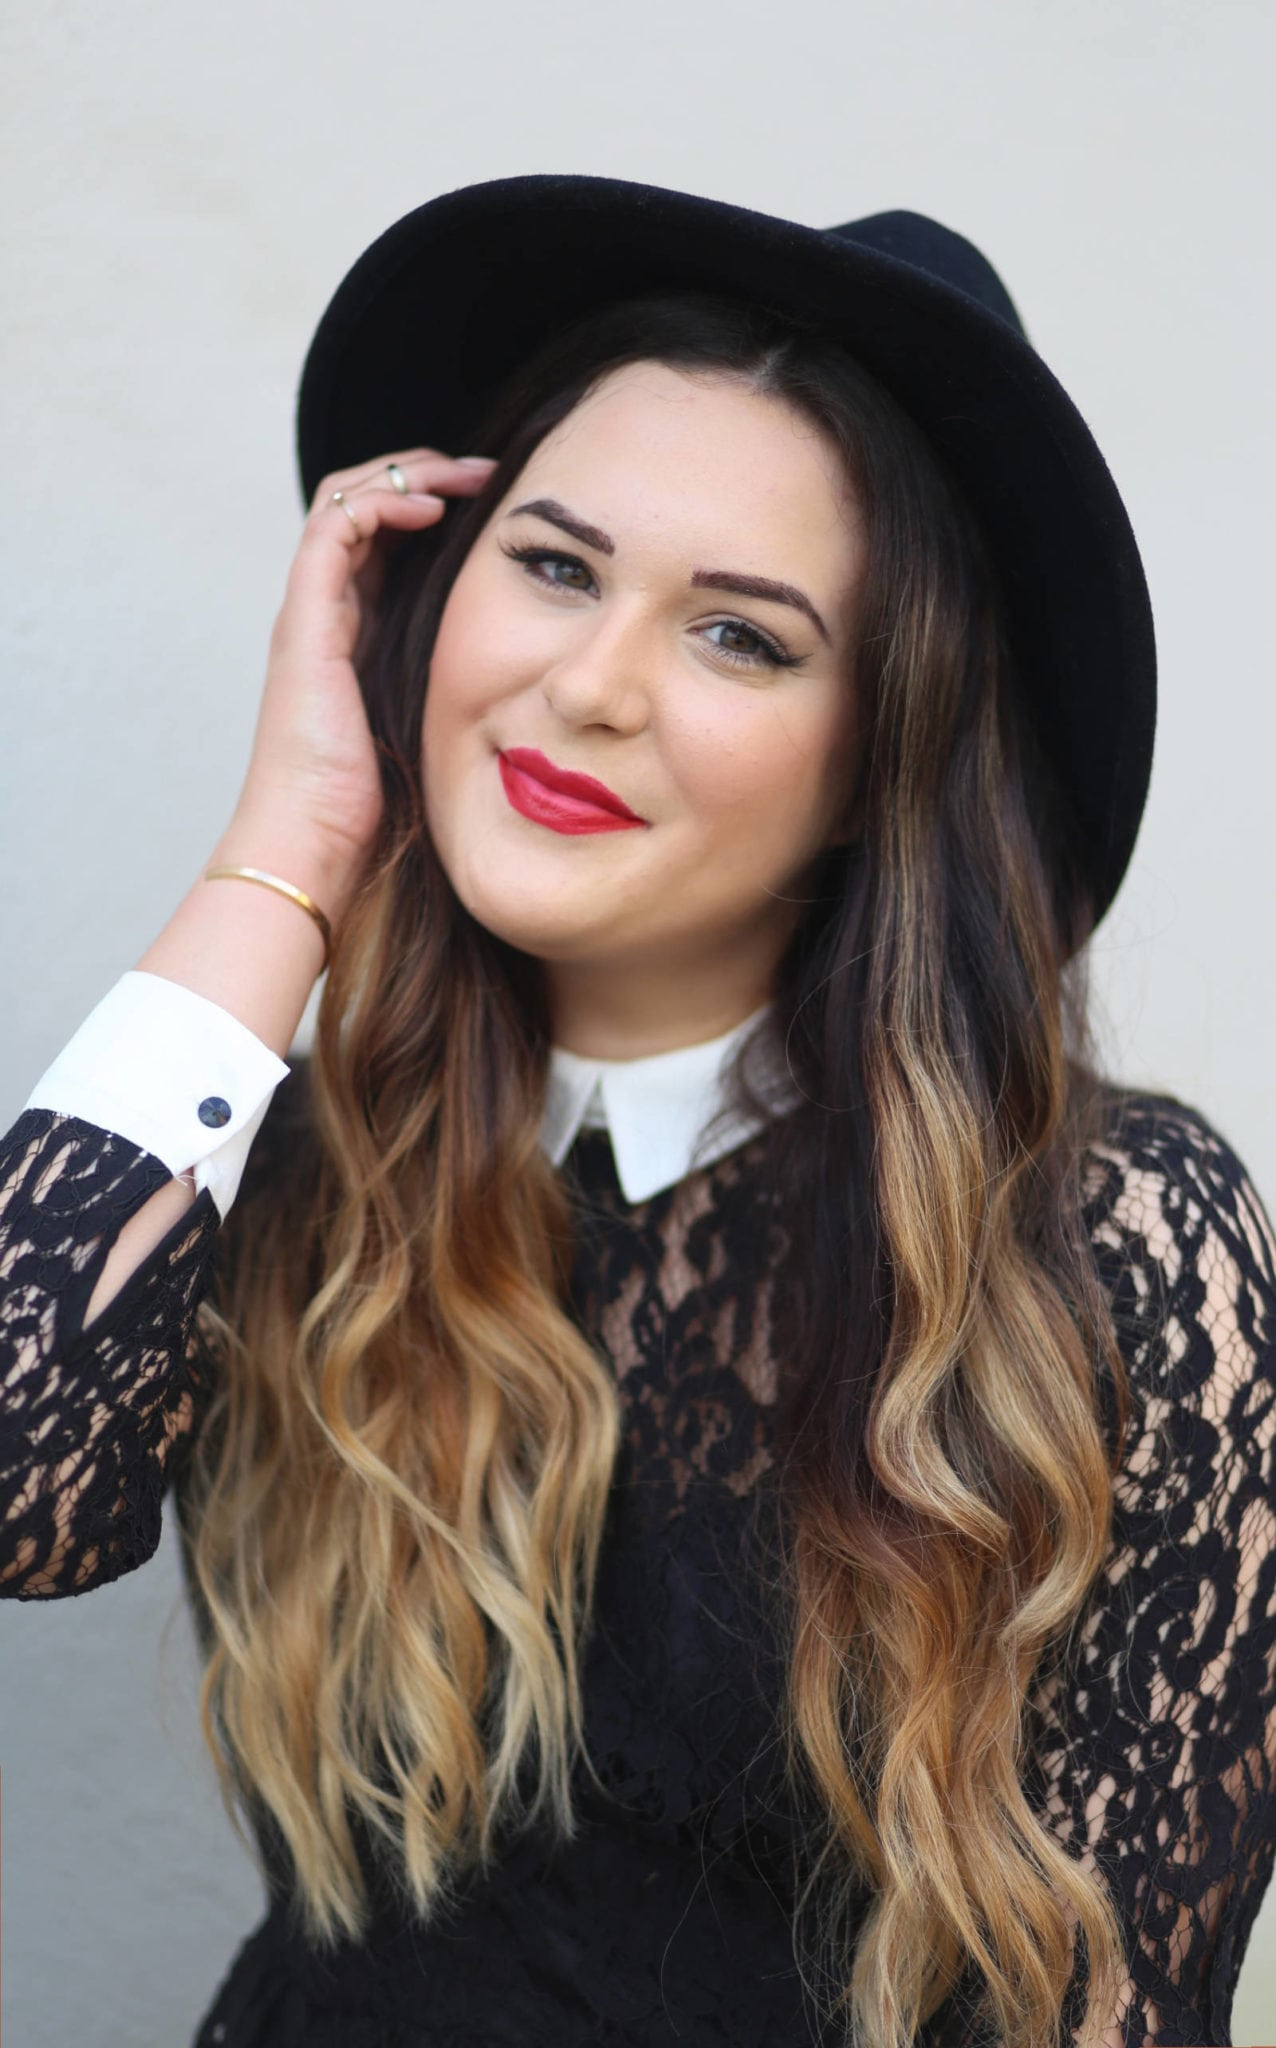 Fashion blogger Michelle Kehoe of Mash Elle shares a Valentine's Day makeup look with an Elizabeth Arden Valentines Lipstick, MAC pro longwear foundation, dior mascara and hourglass highlighter.